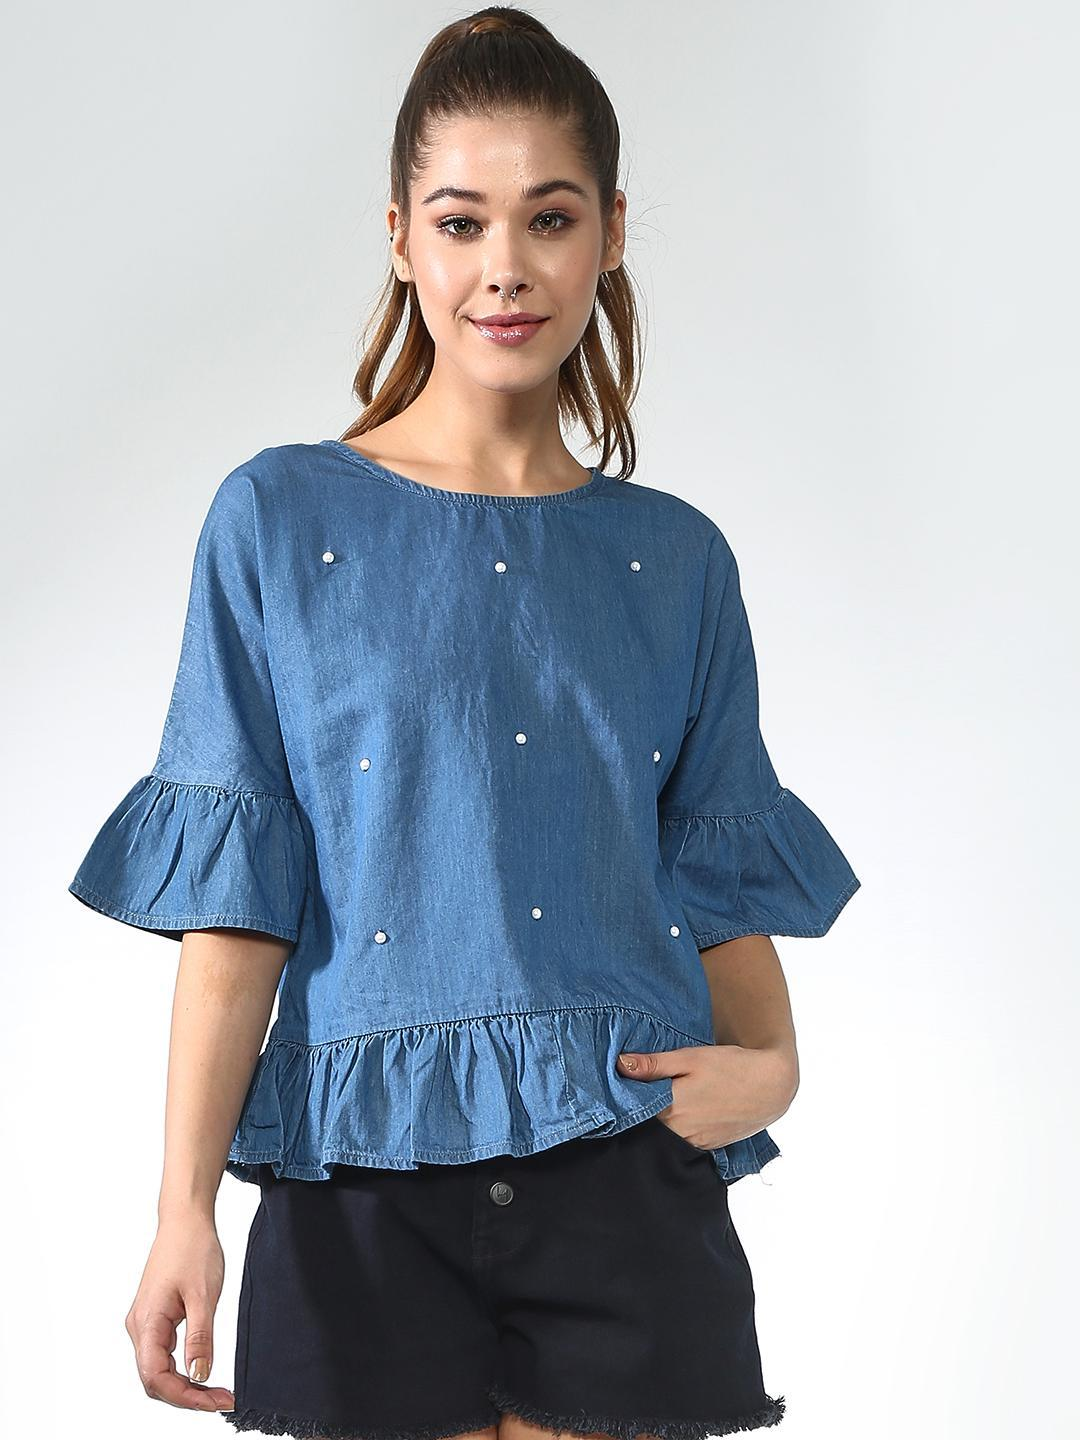 Blue Saint Blue Embellished Denim Peplum Top 1